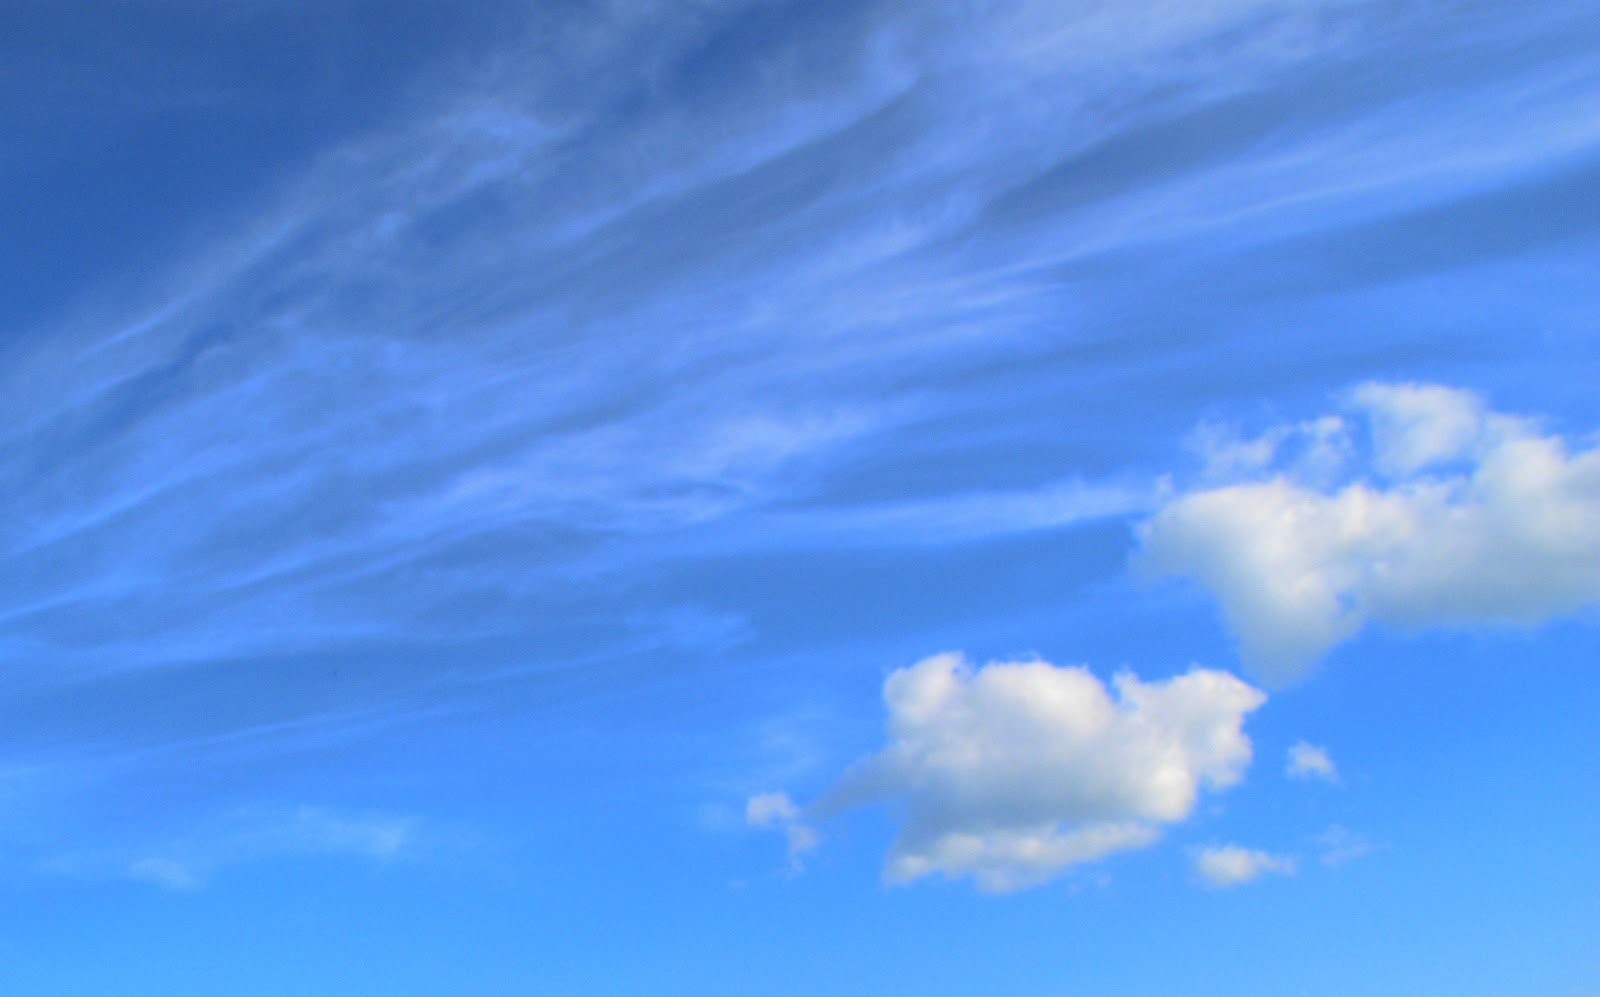 Pictures World Blue sky wallpapers 1600x997